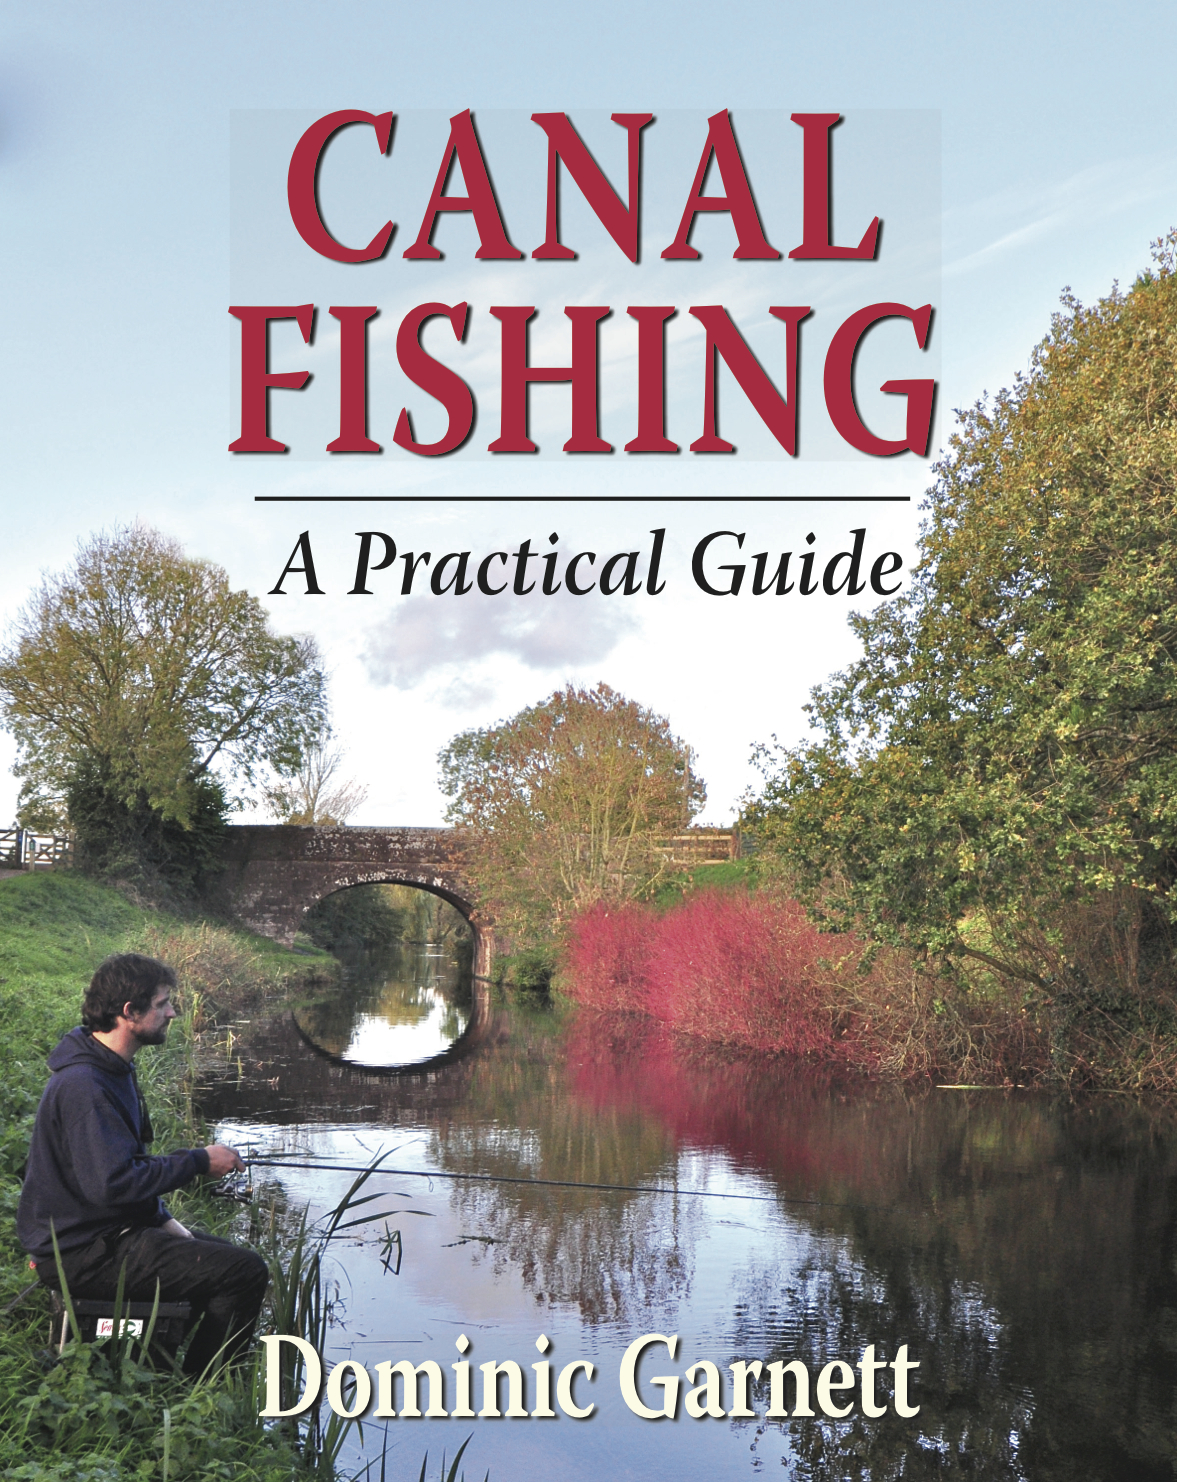 Canal fishing book hardback angling collectibledg fishing for Book with fish on cover